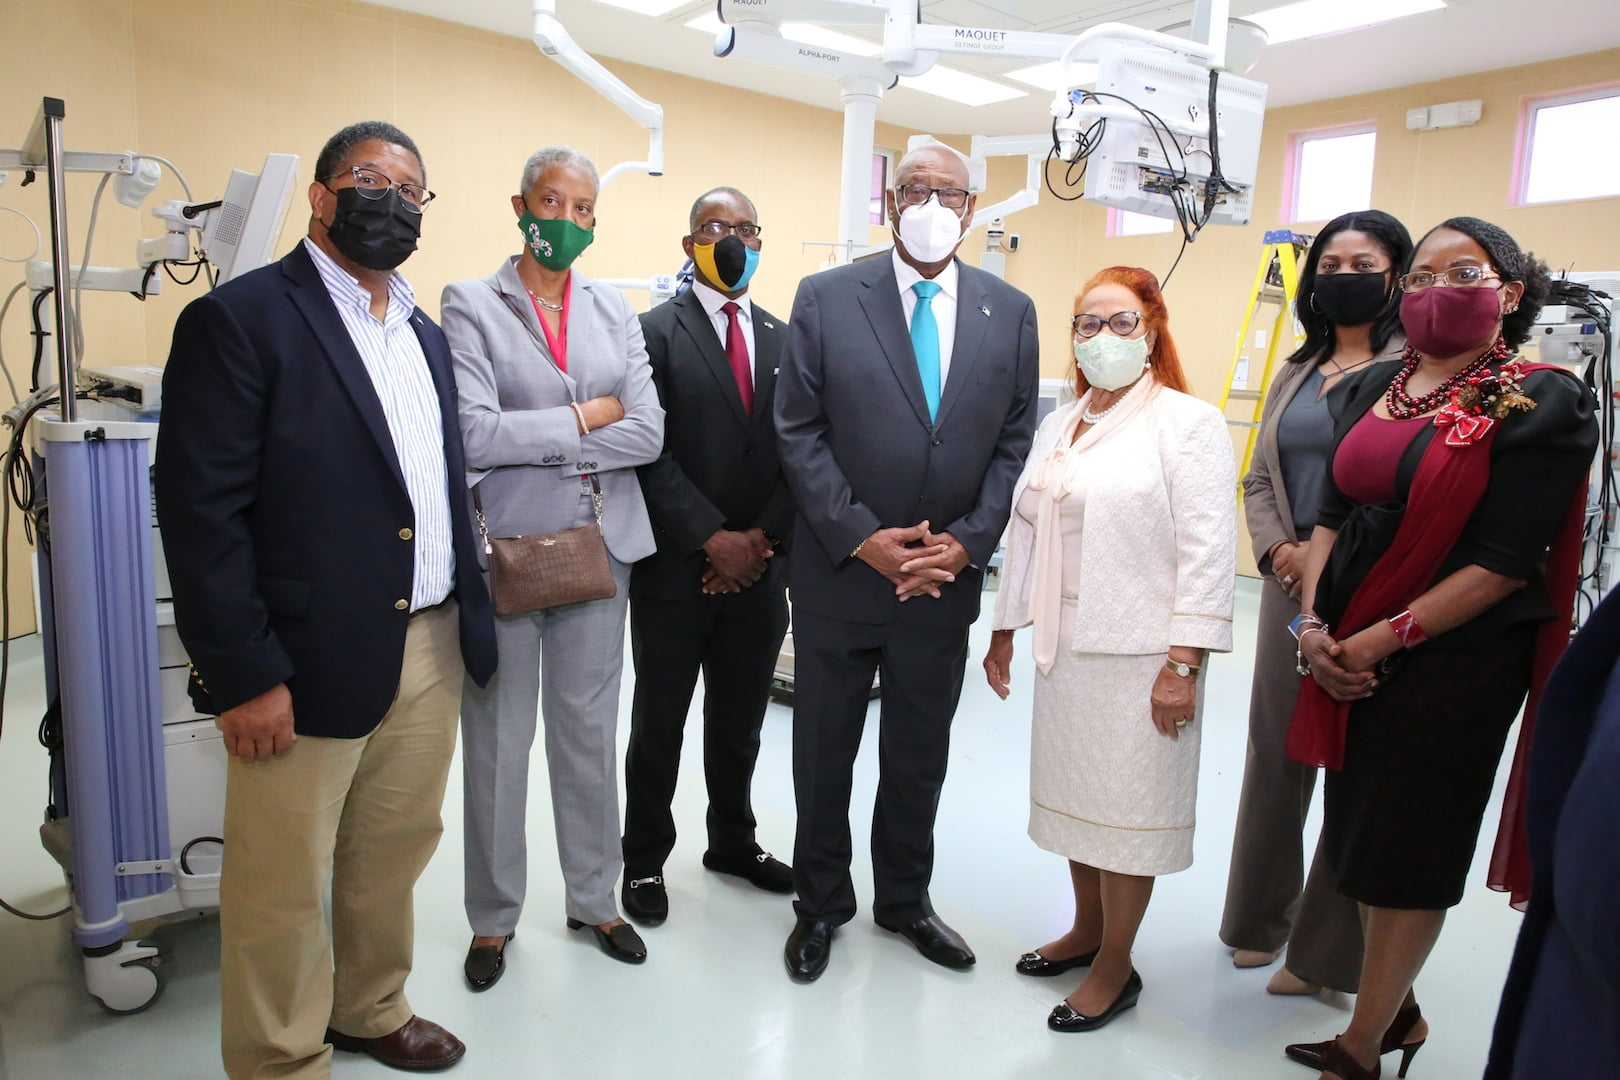 Governor general tours Rand Memorial Hospital, praises healthcare workers